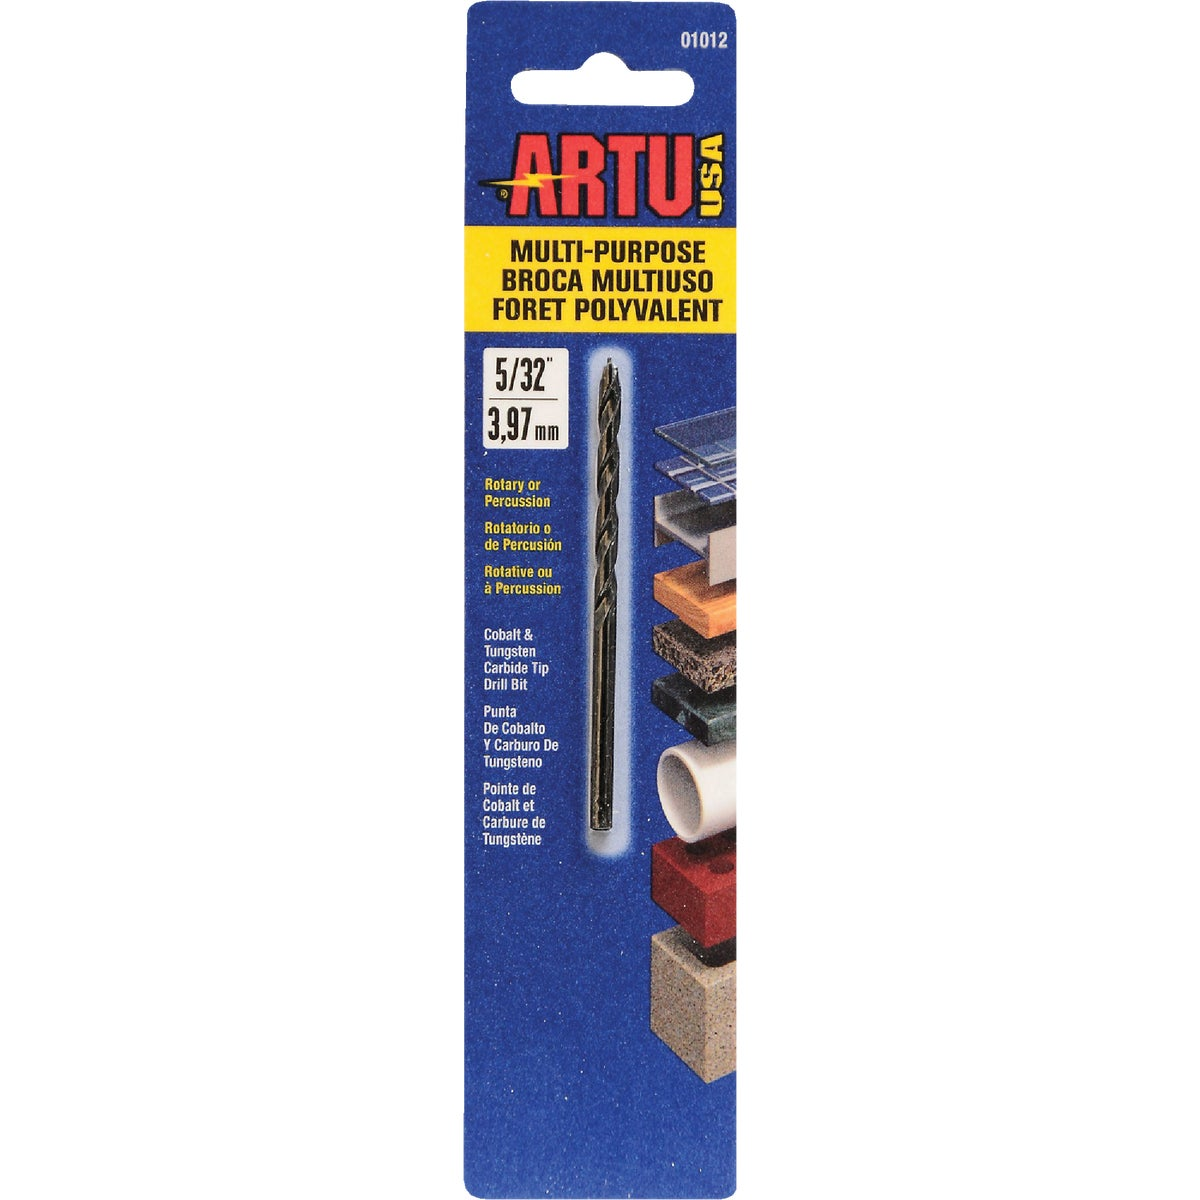 "5/32"" MULTIPURPOSE BIT - 01012 by Artu Usa Inc"